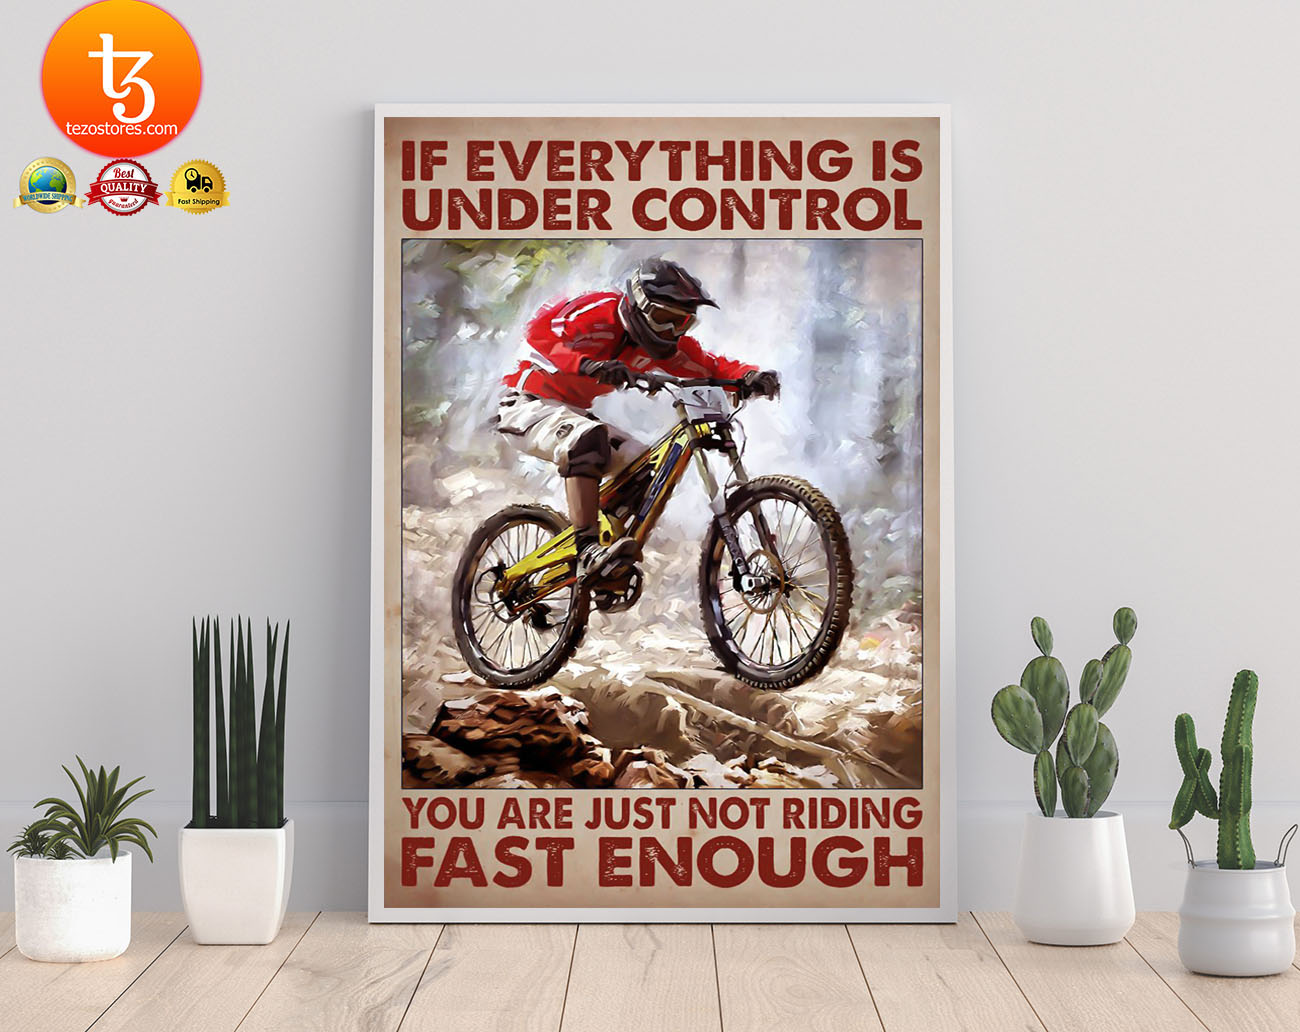 If everything is under control you are just not riding fast enough poster 3